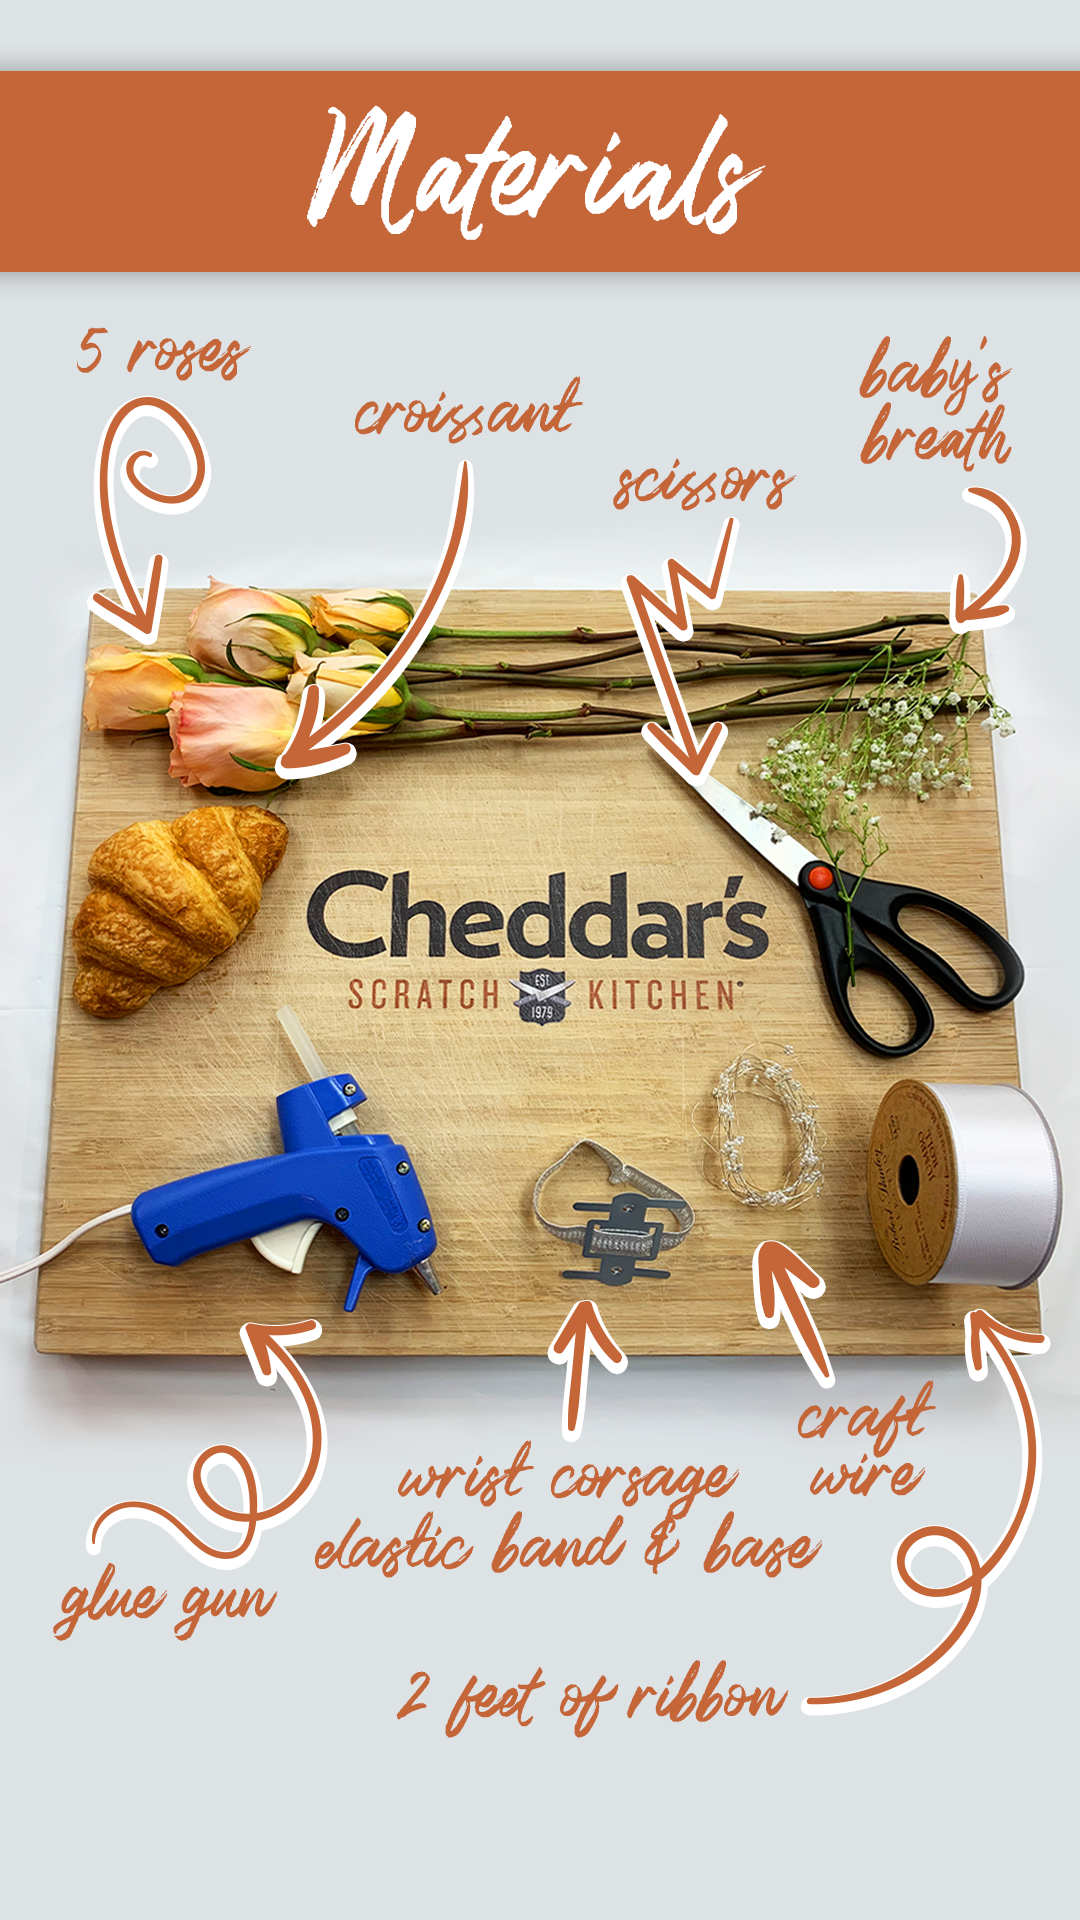 Get started with these materials to make a croissant corsage.